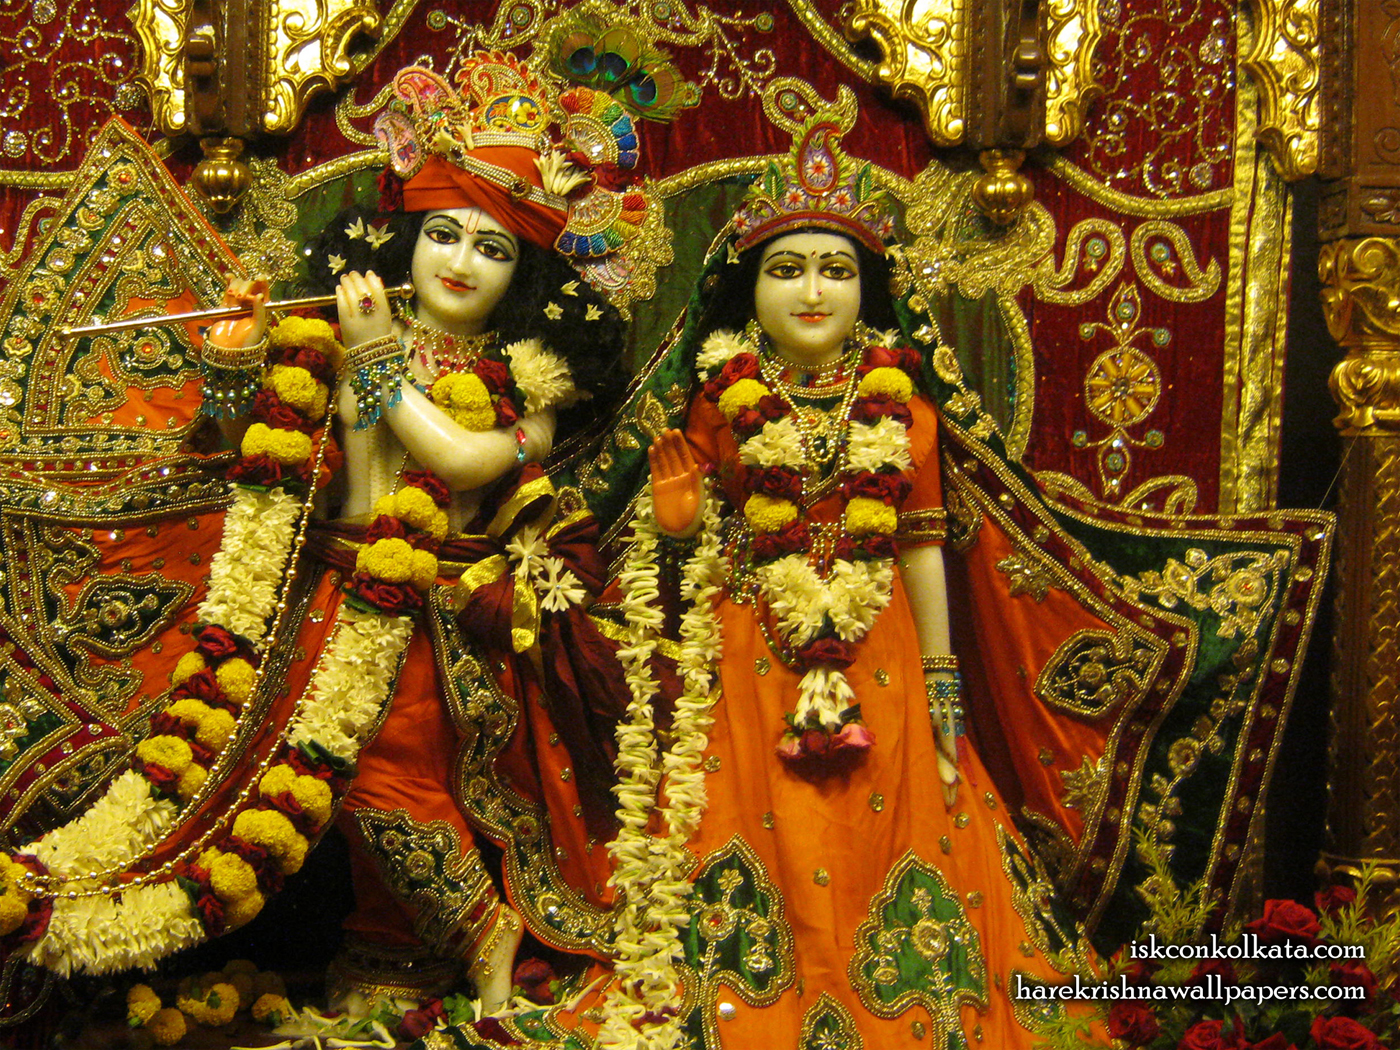 Sri Sri Radha Govinda Wallpaper (002) Size 1400x1050 Download